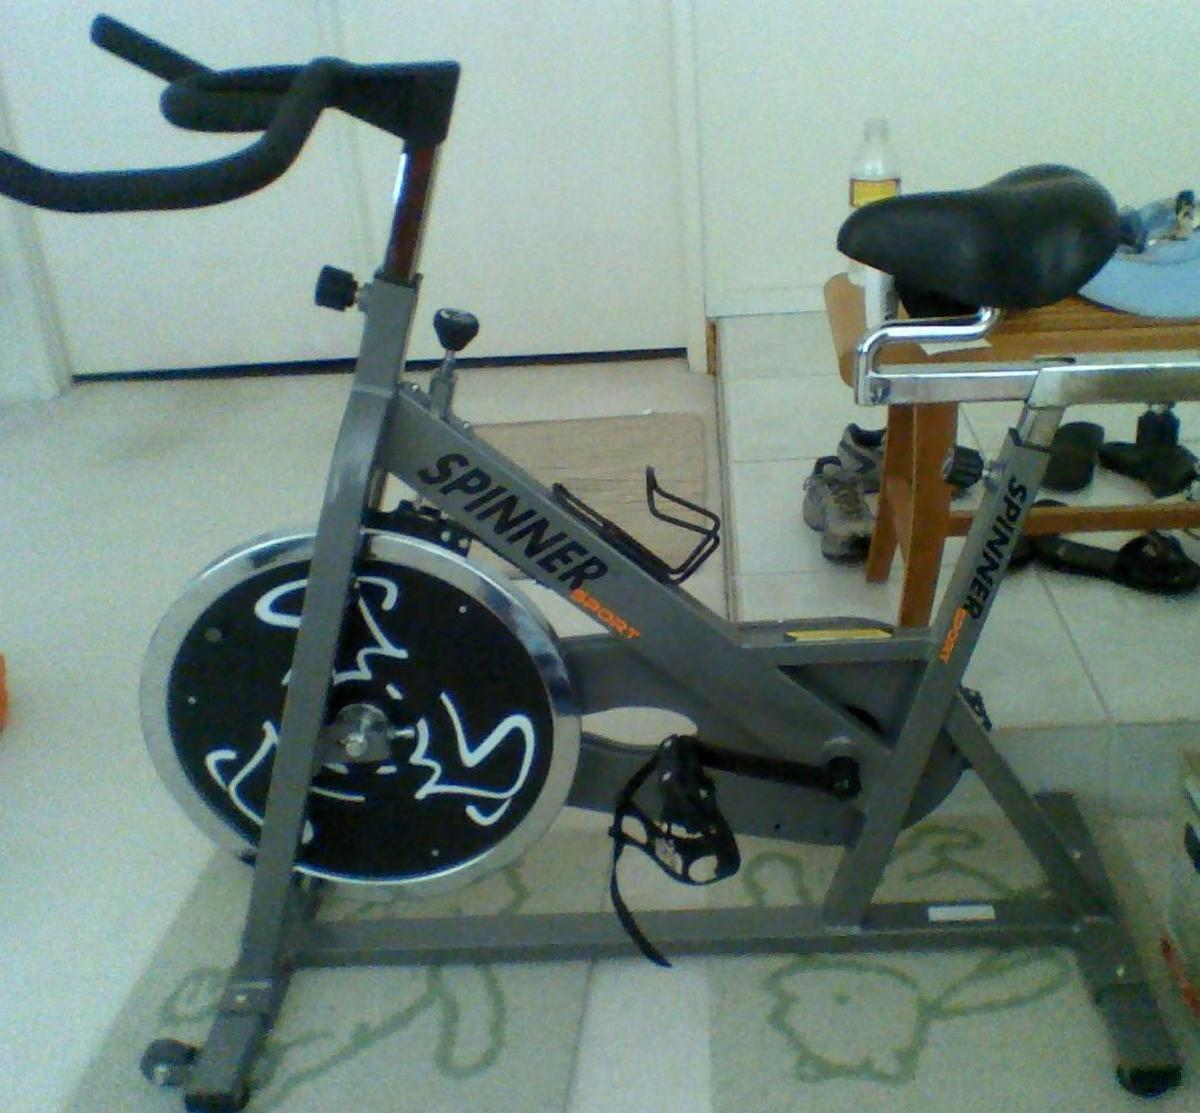 Spinner Sport Spin Bike Review